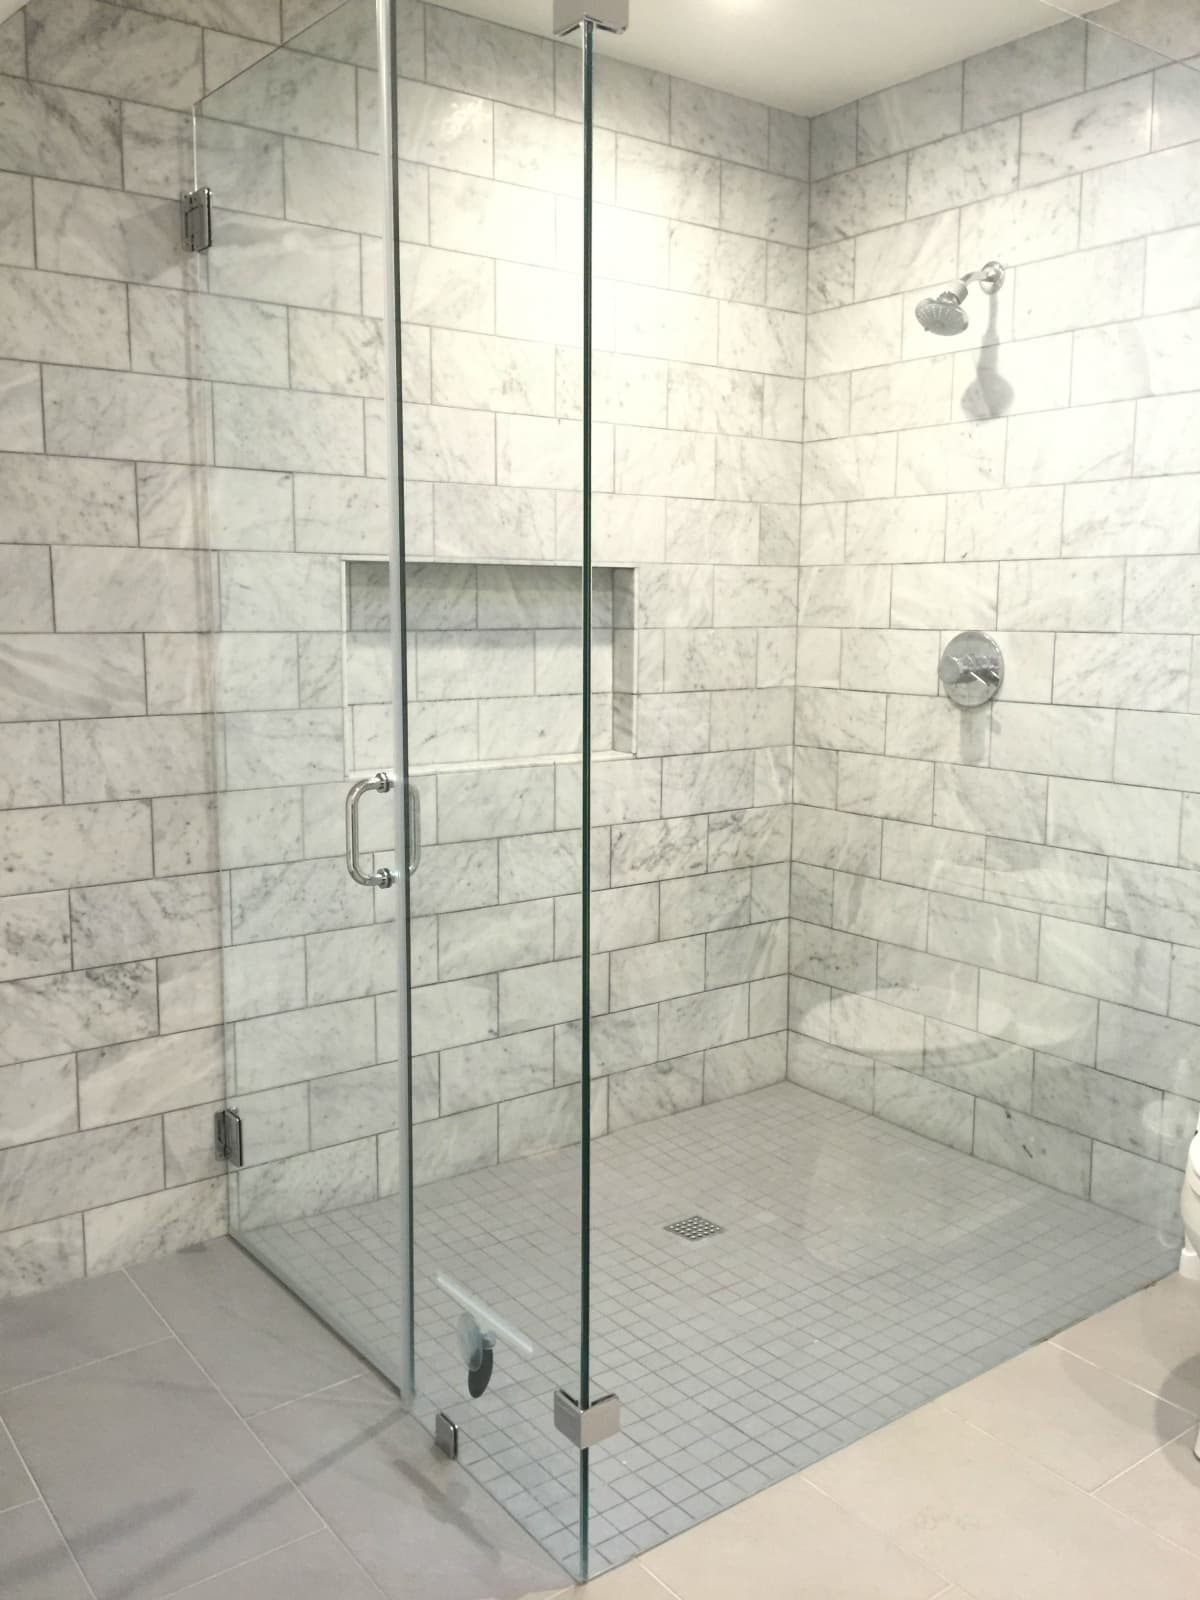 No curb/zero entry shower